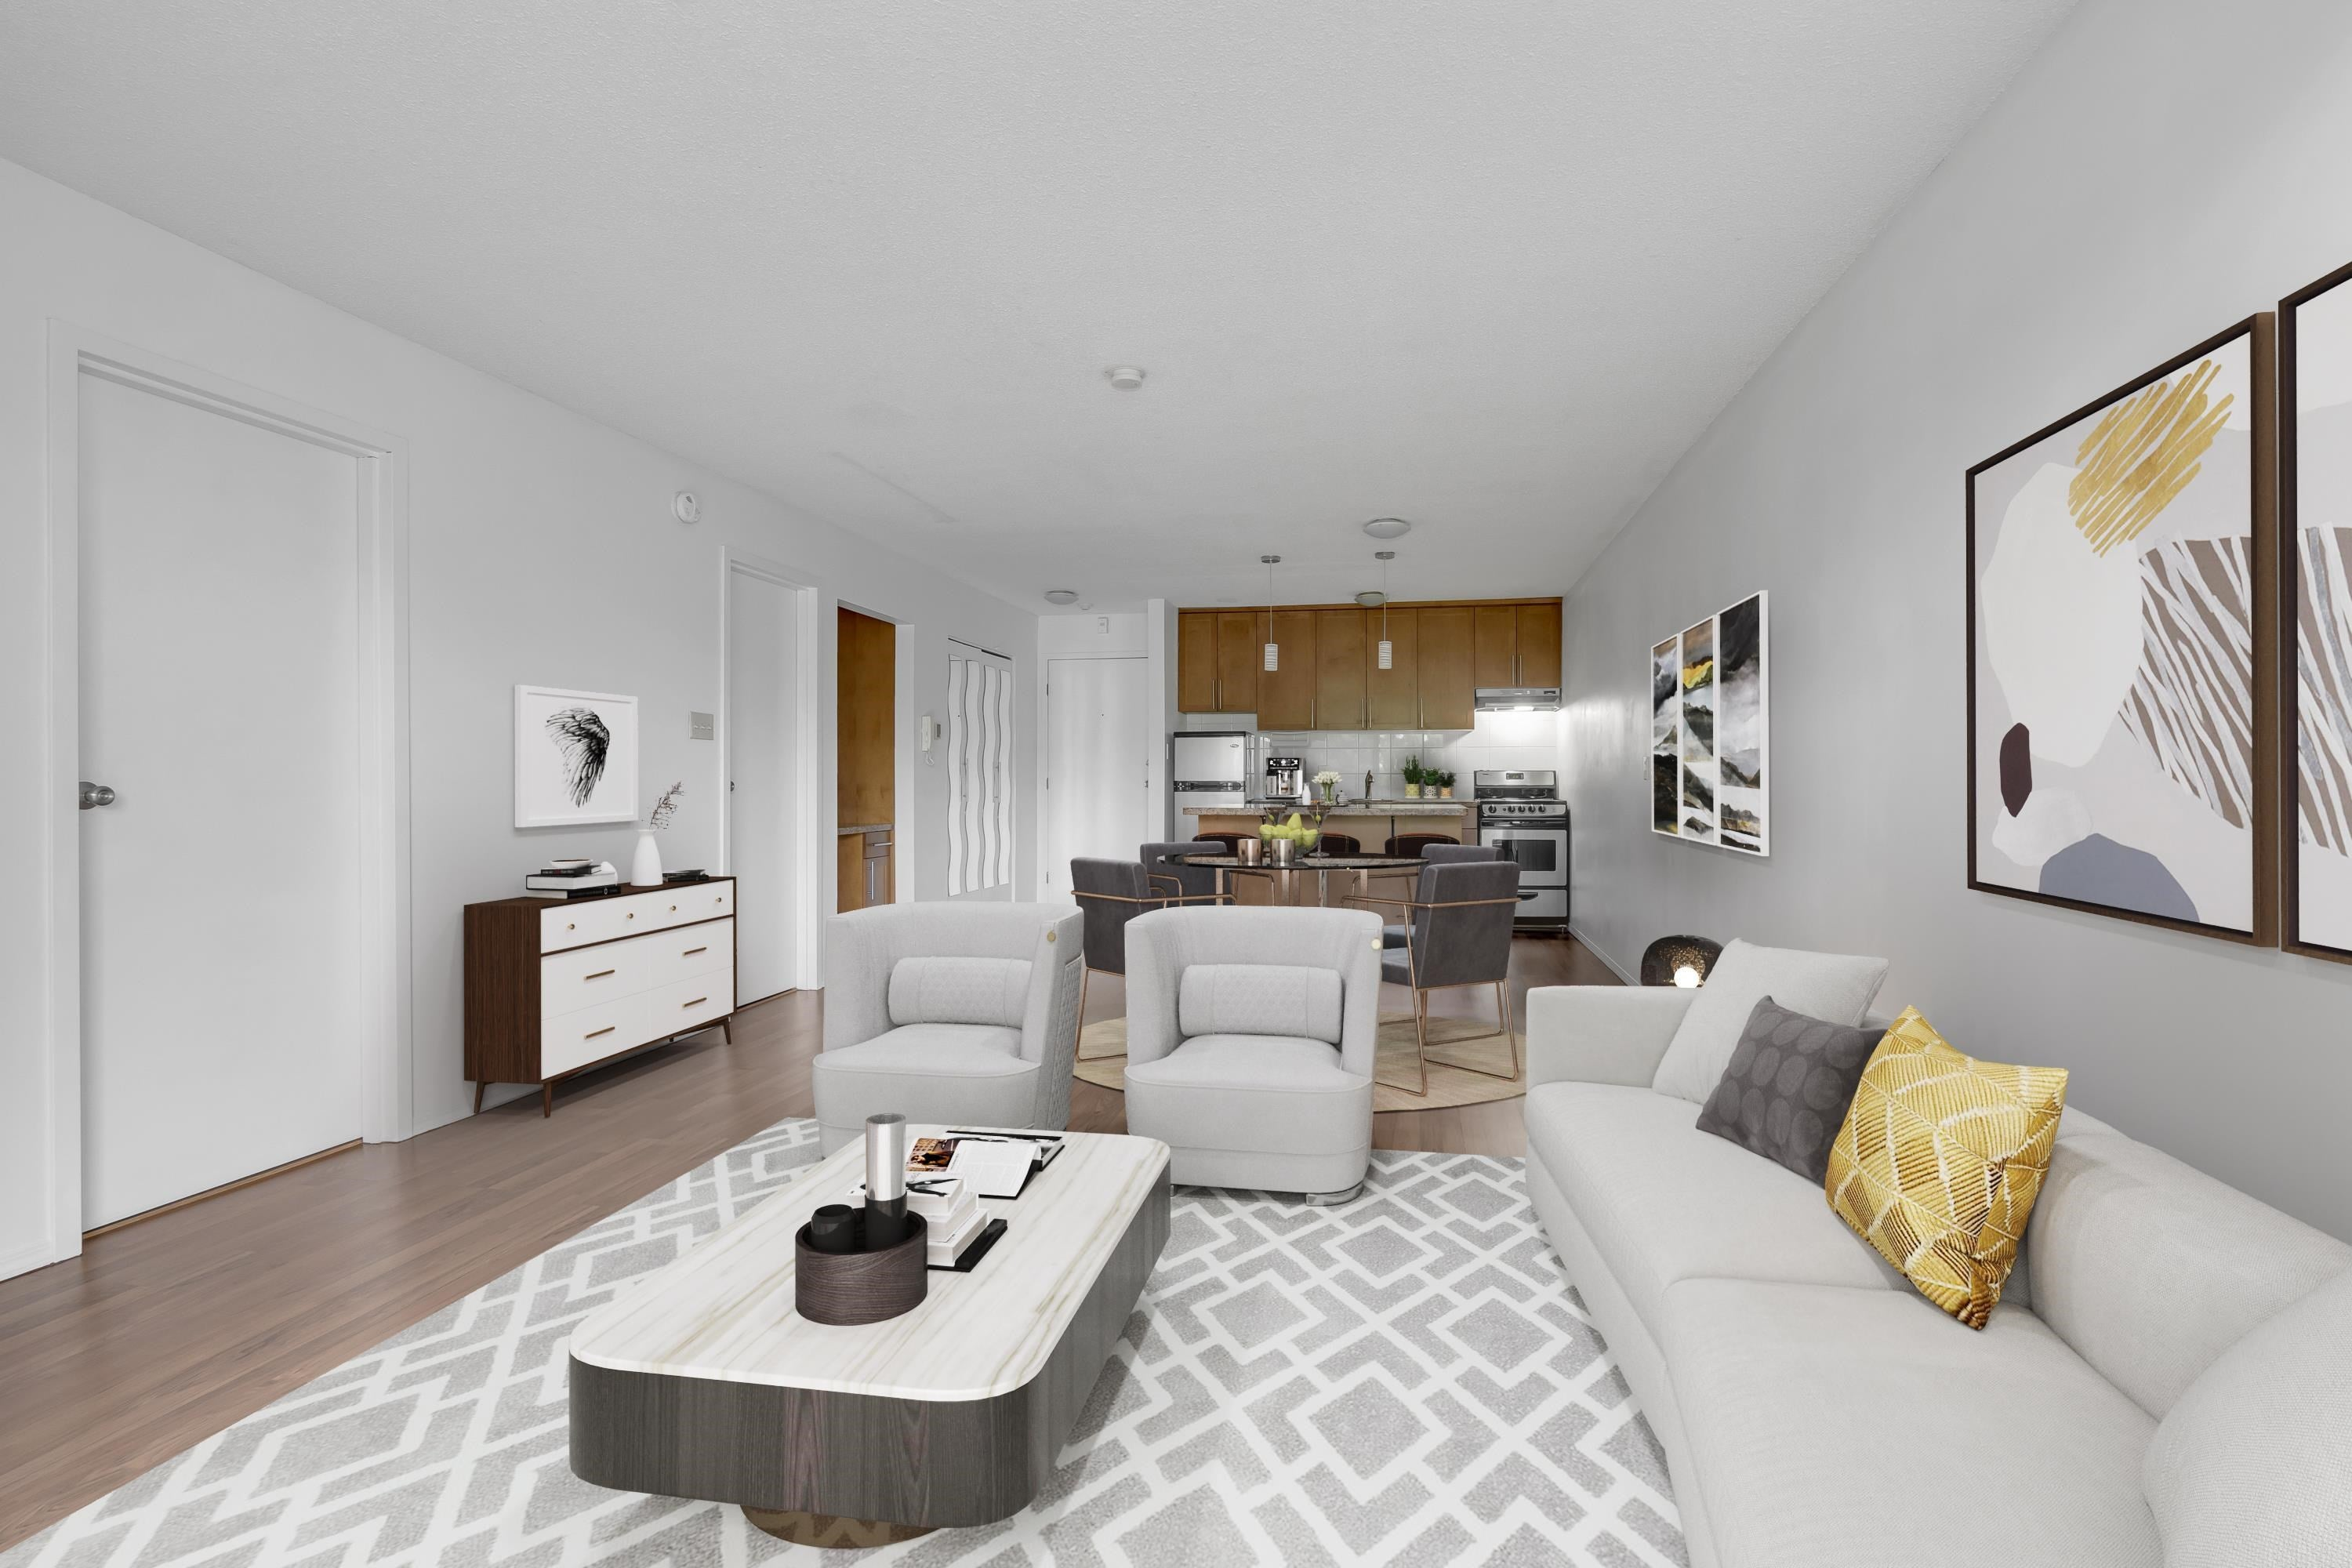 208 270 WEST 3RD STREET - Lower Lonsdale Apartment/Condo for sale, 1 Bedroom (R2615758) - #3